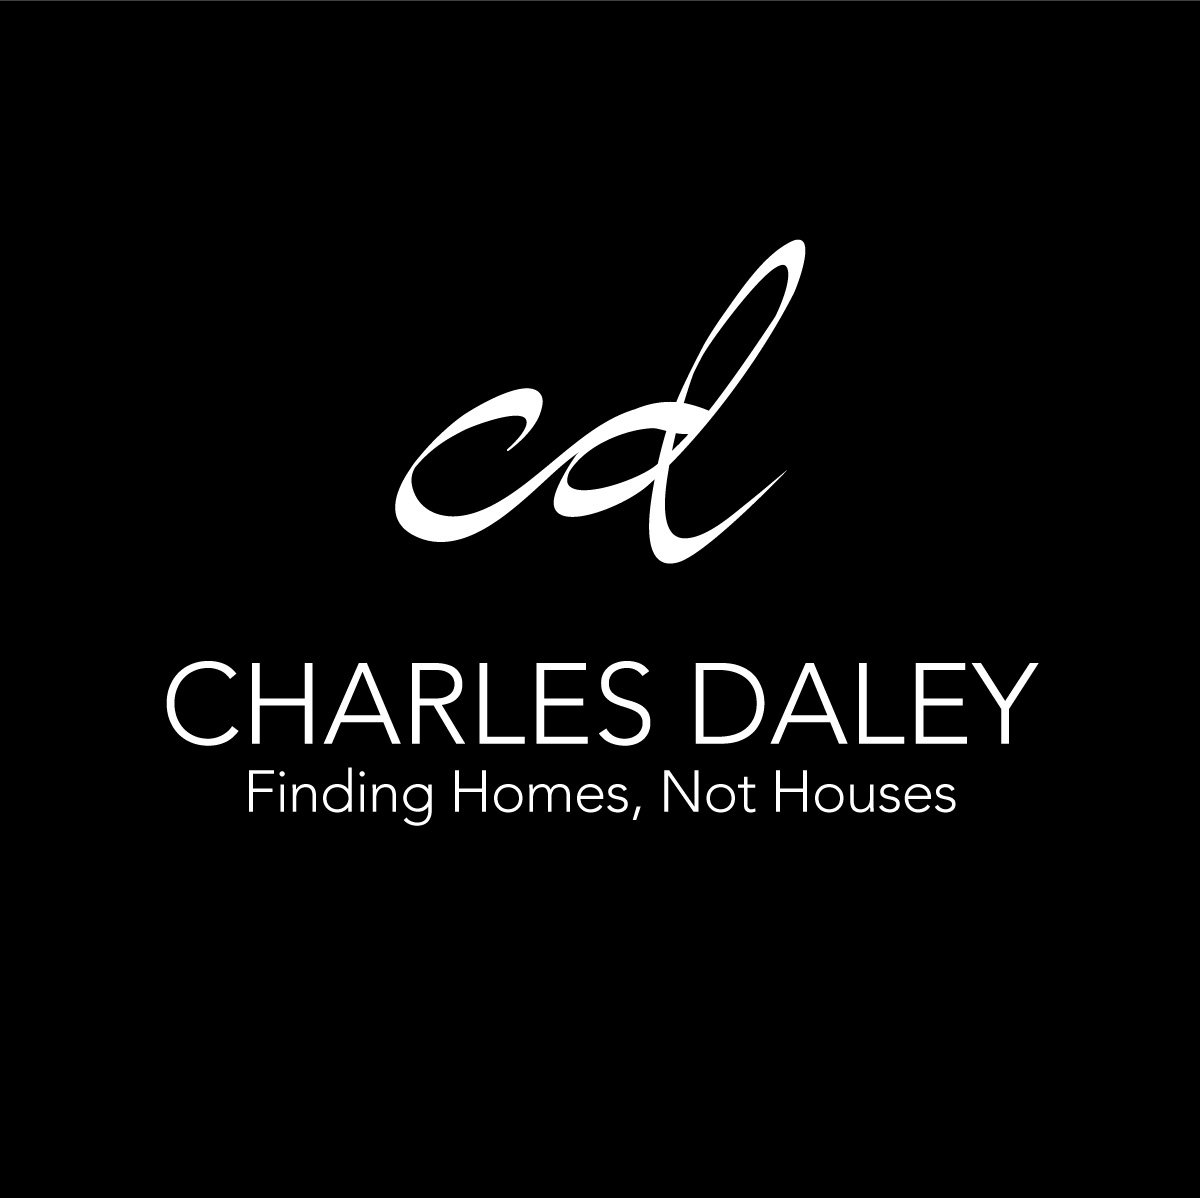 Charles Daley Logo Black